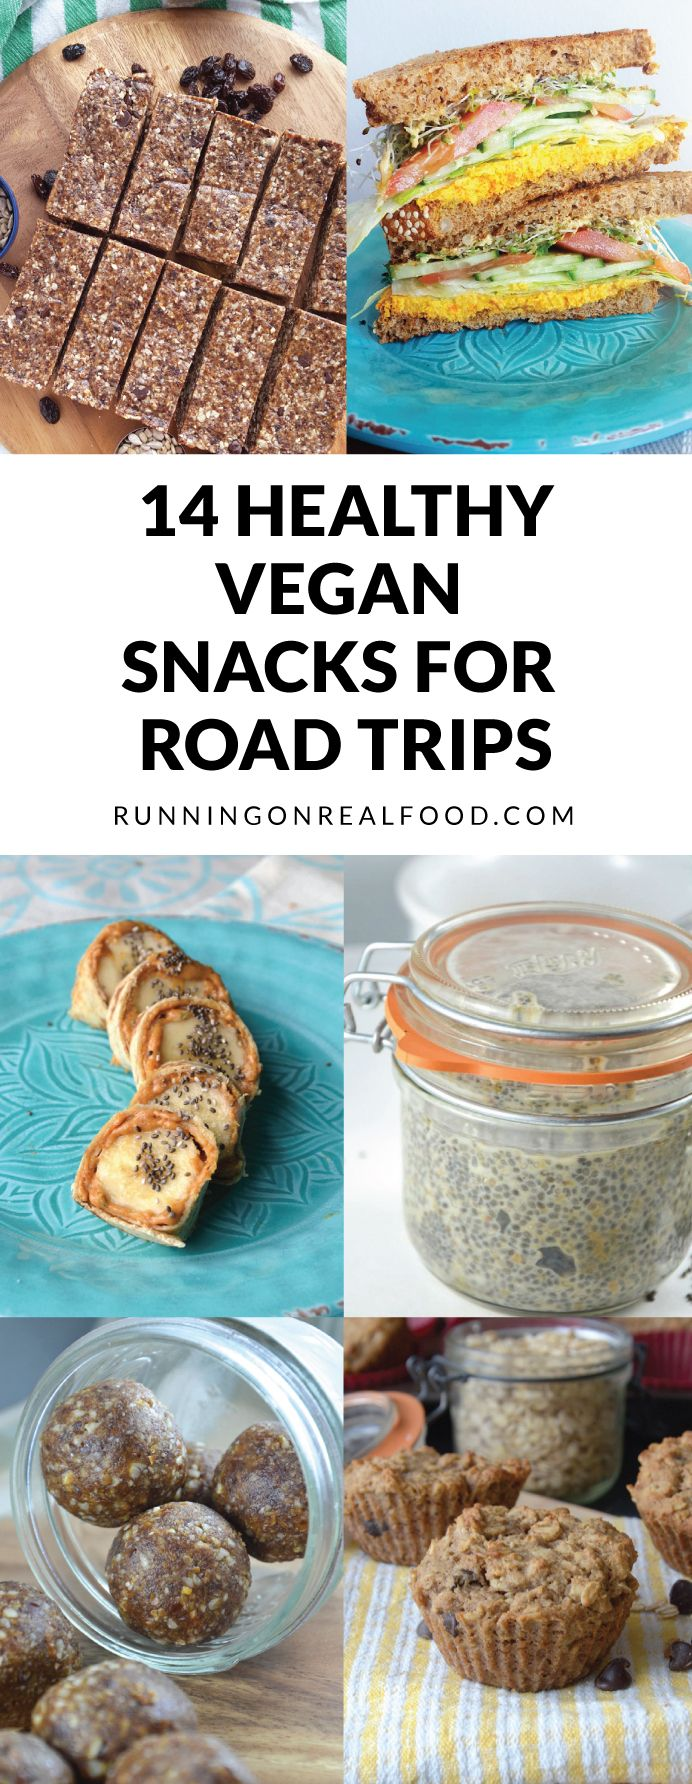 These 14 healthy vegan snacks will help you drive right by that gas station and arrive at your destination healthier, happier and feeling great! Easy, wholesome, delicous and completely plant-based. It's easier than you think to travel healthy! Works great for flights too.